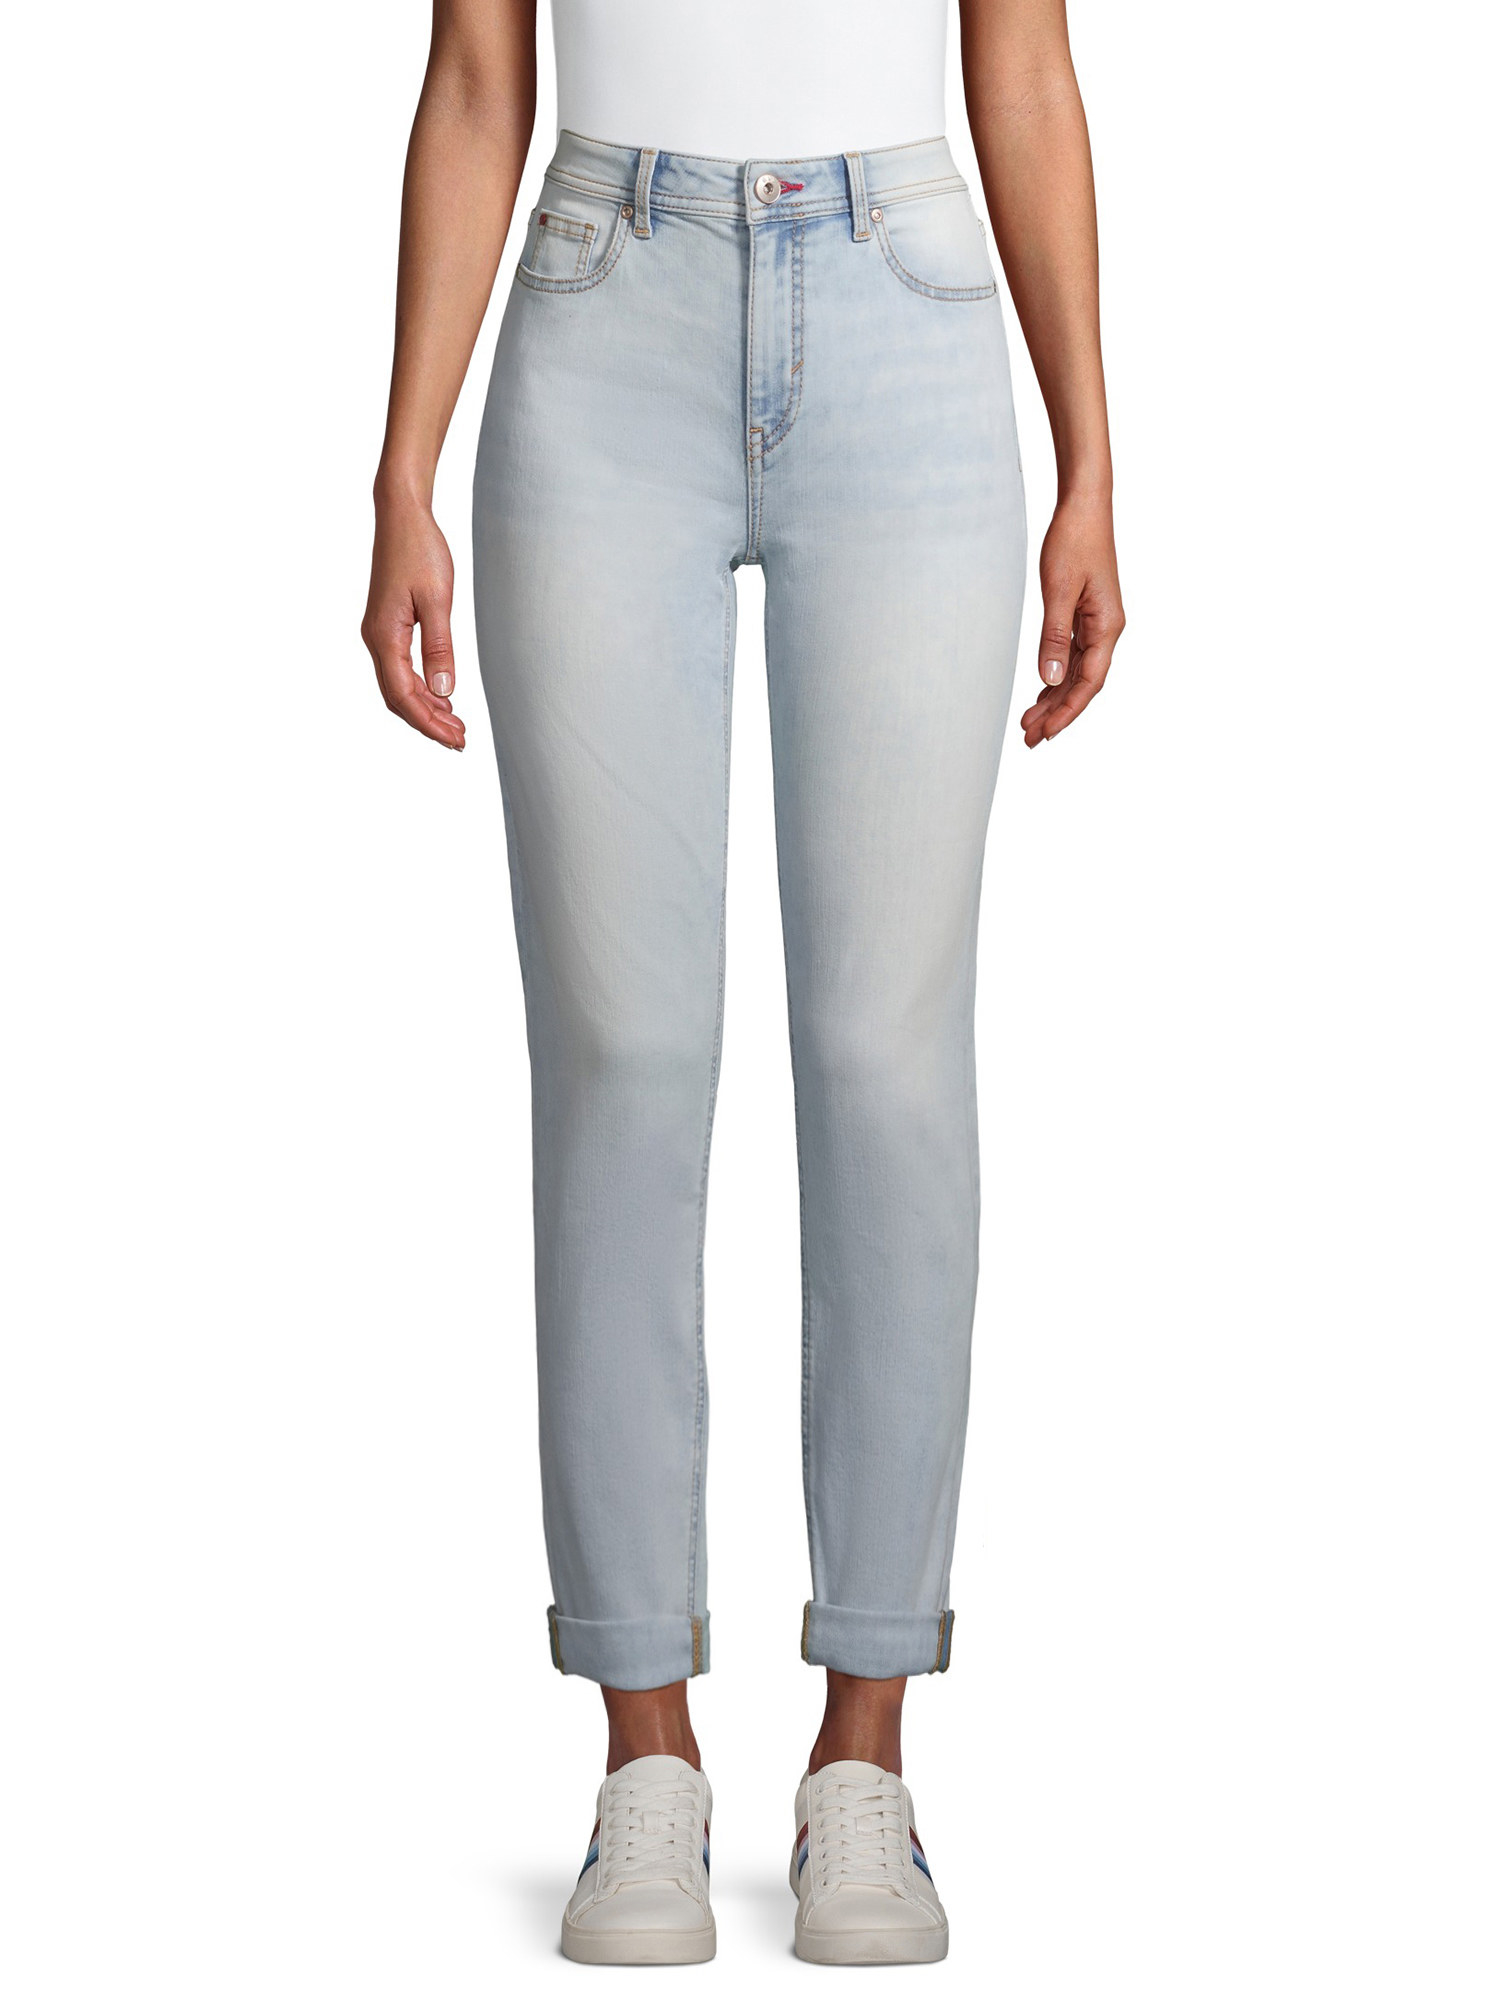 Model wearing a light wash pair of cuffed relaxed jeans